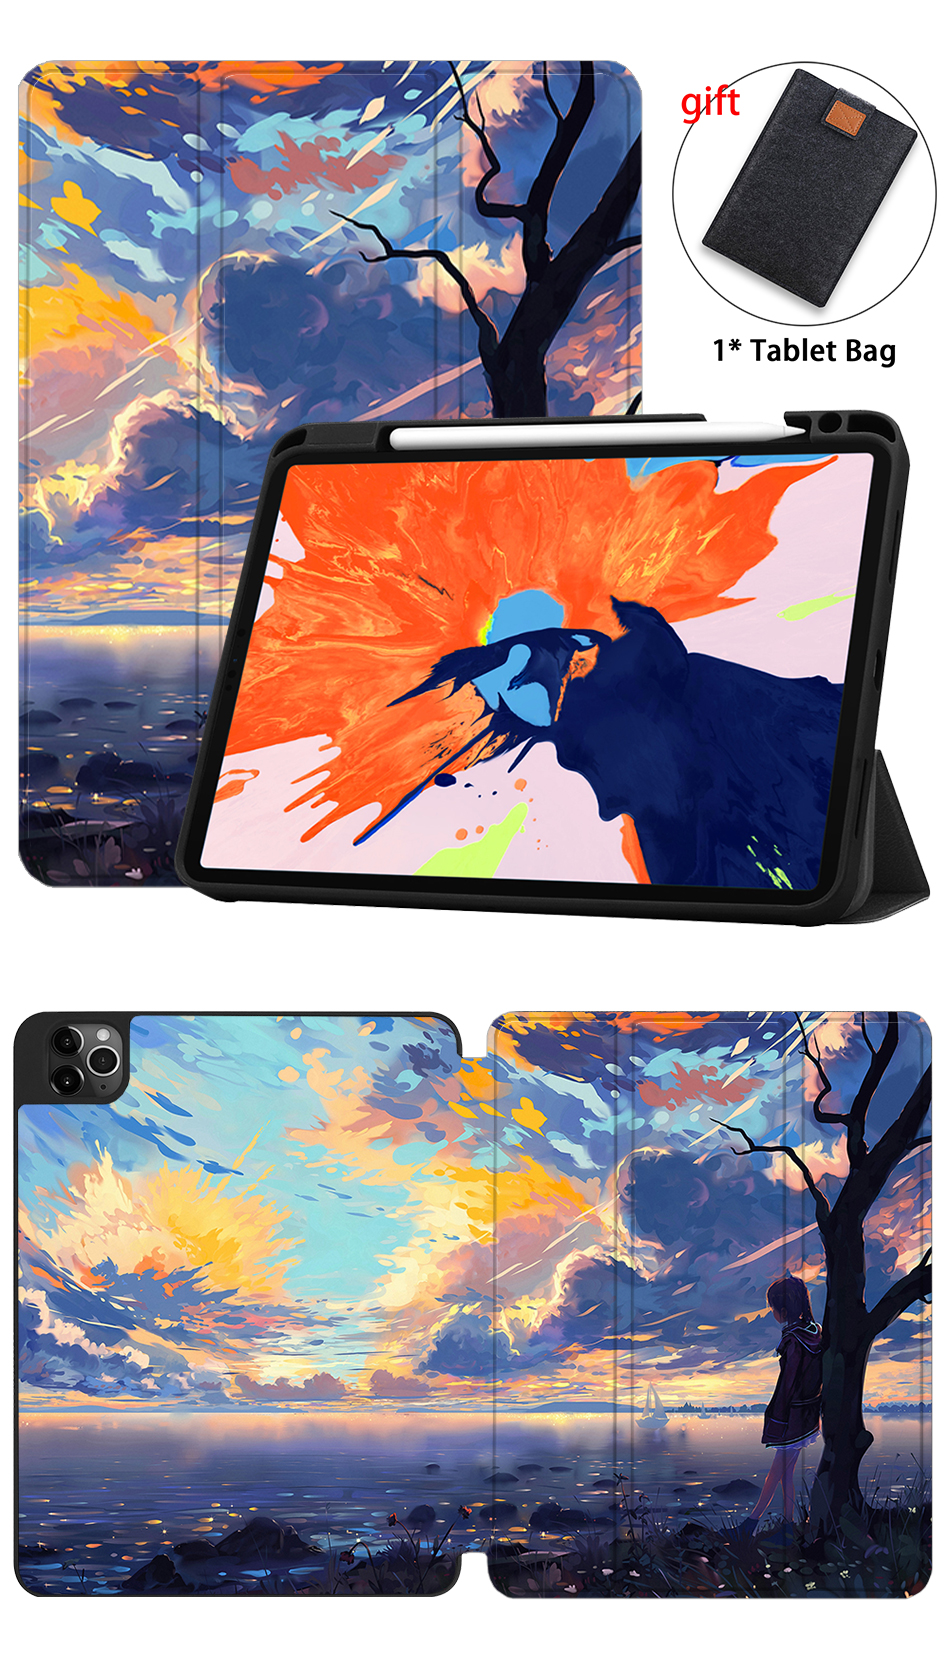 Soft Back+PU Leather 12.9 Tablet For inch A2233 2020 TPU MTT iPad Pro A2229 Case New